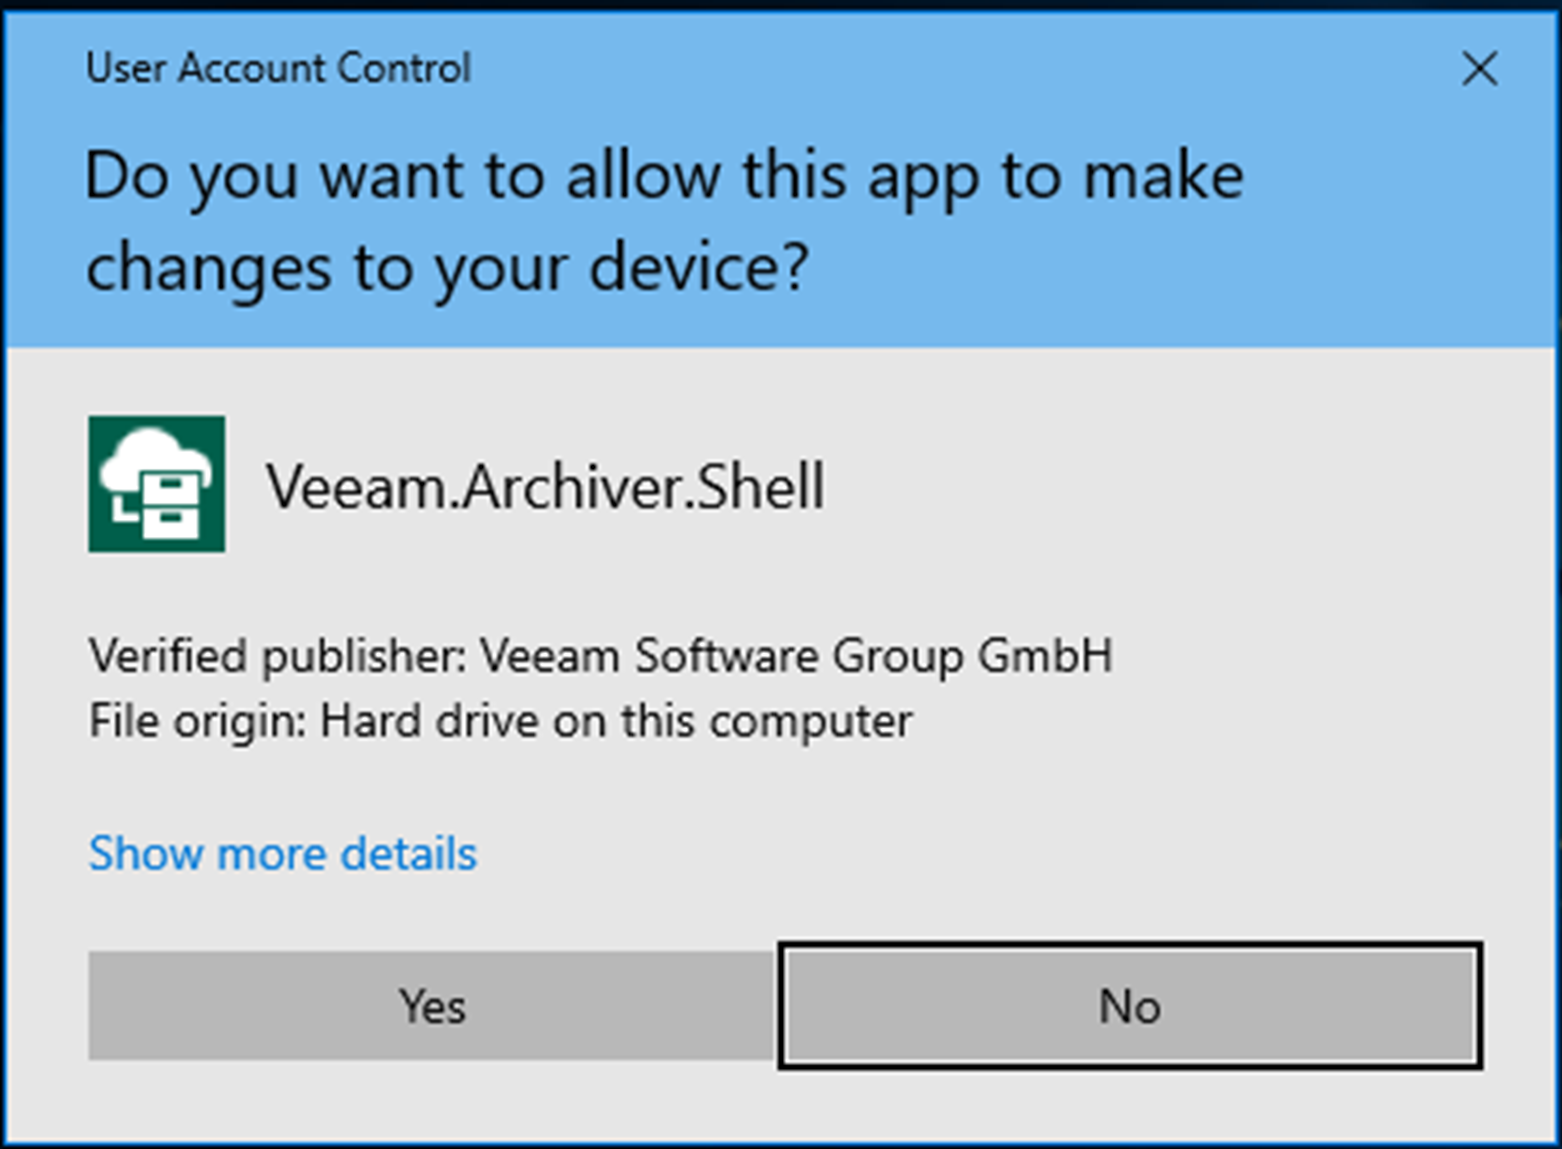 100320 2346 HowtoUpgrad16 - How to Upgrade Veeam Backup for Microsoft Office 365 to V4c Day 0 Update #Veeam #Office365 #Backup #Mvphour